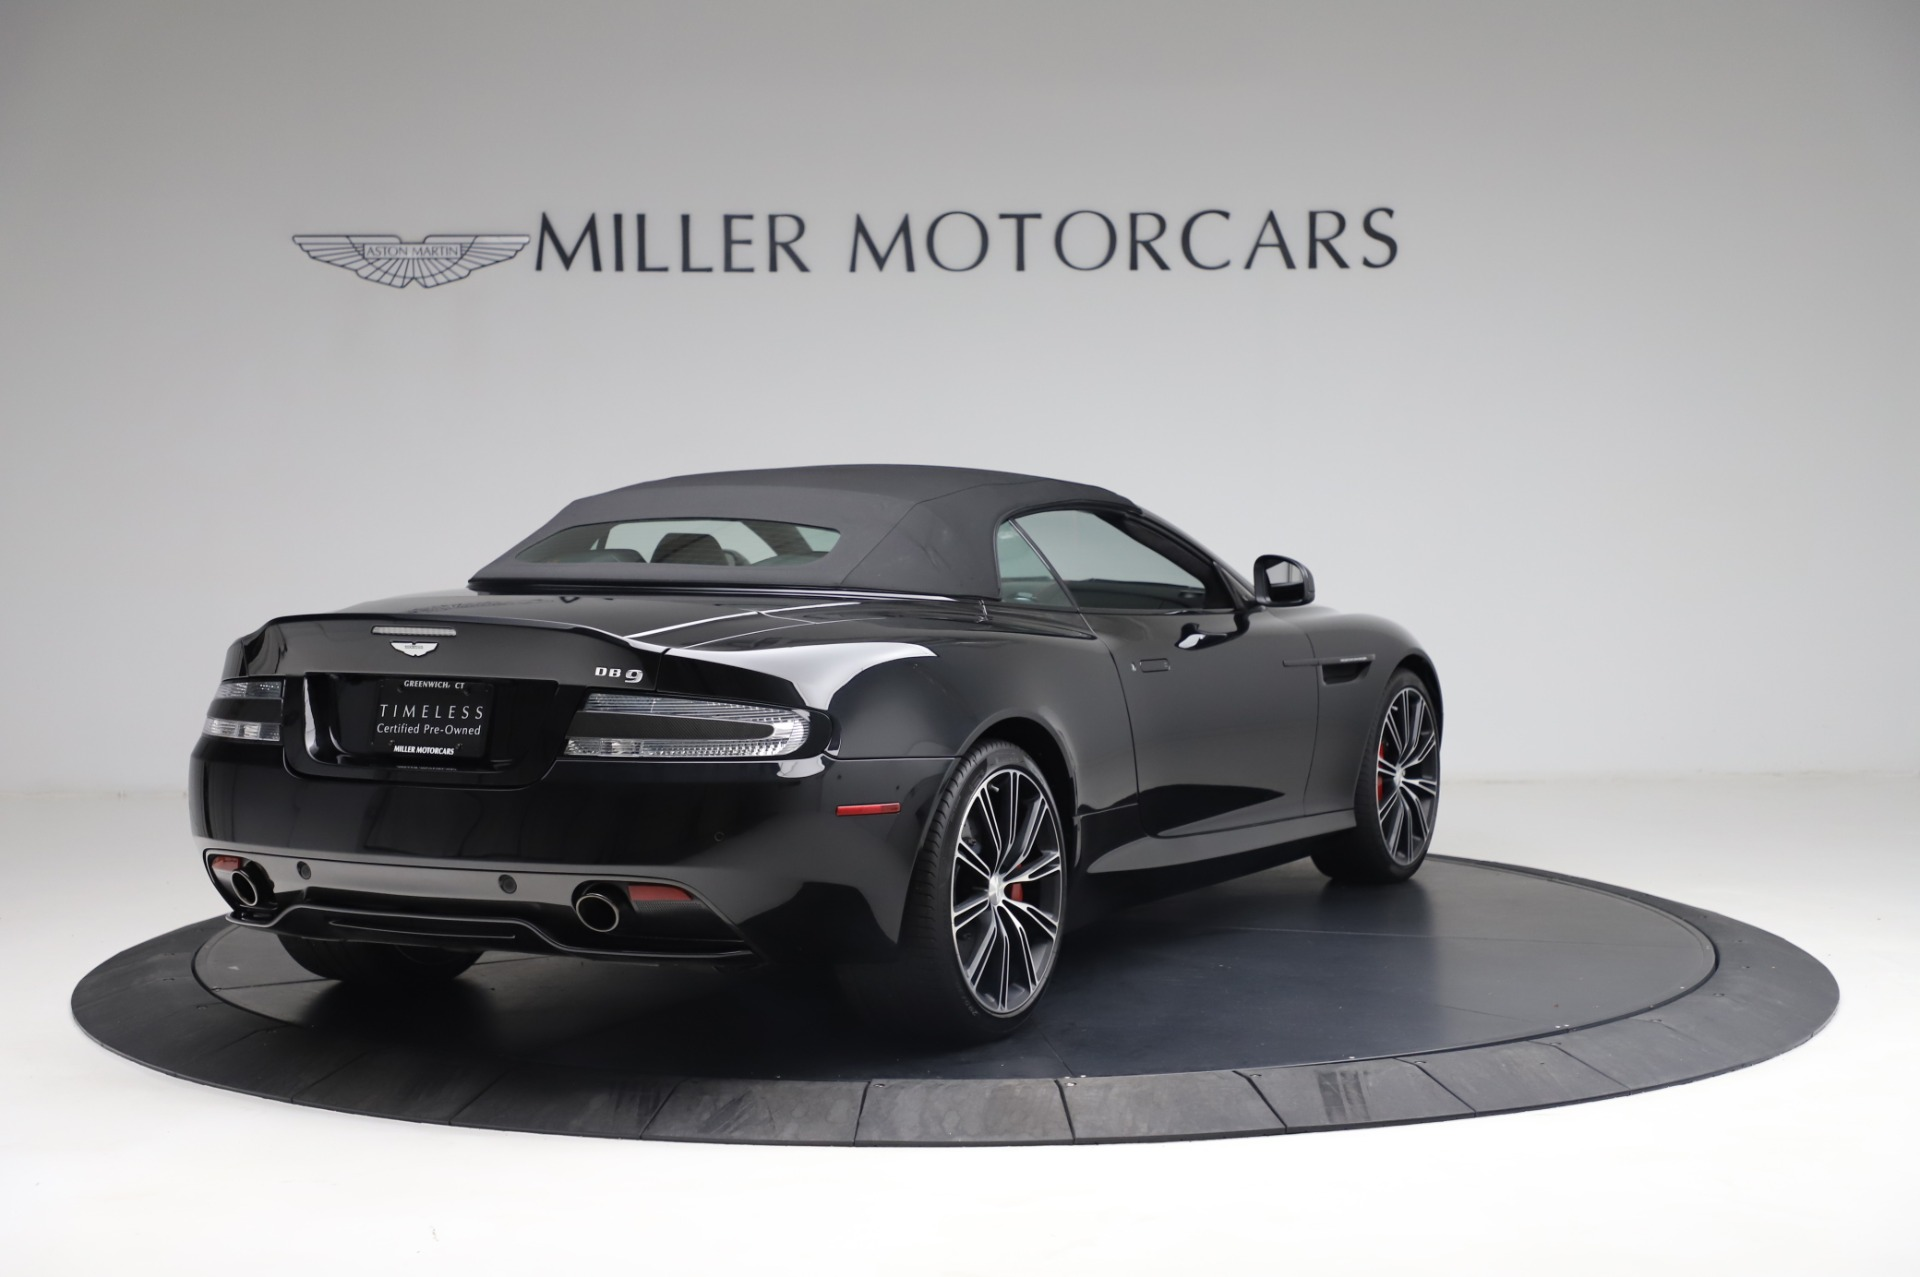 Used 2015 Aston Martin DB9 Carbon Edition Volante For Sale In Westport, CT 1919_p16